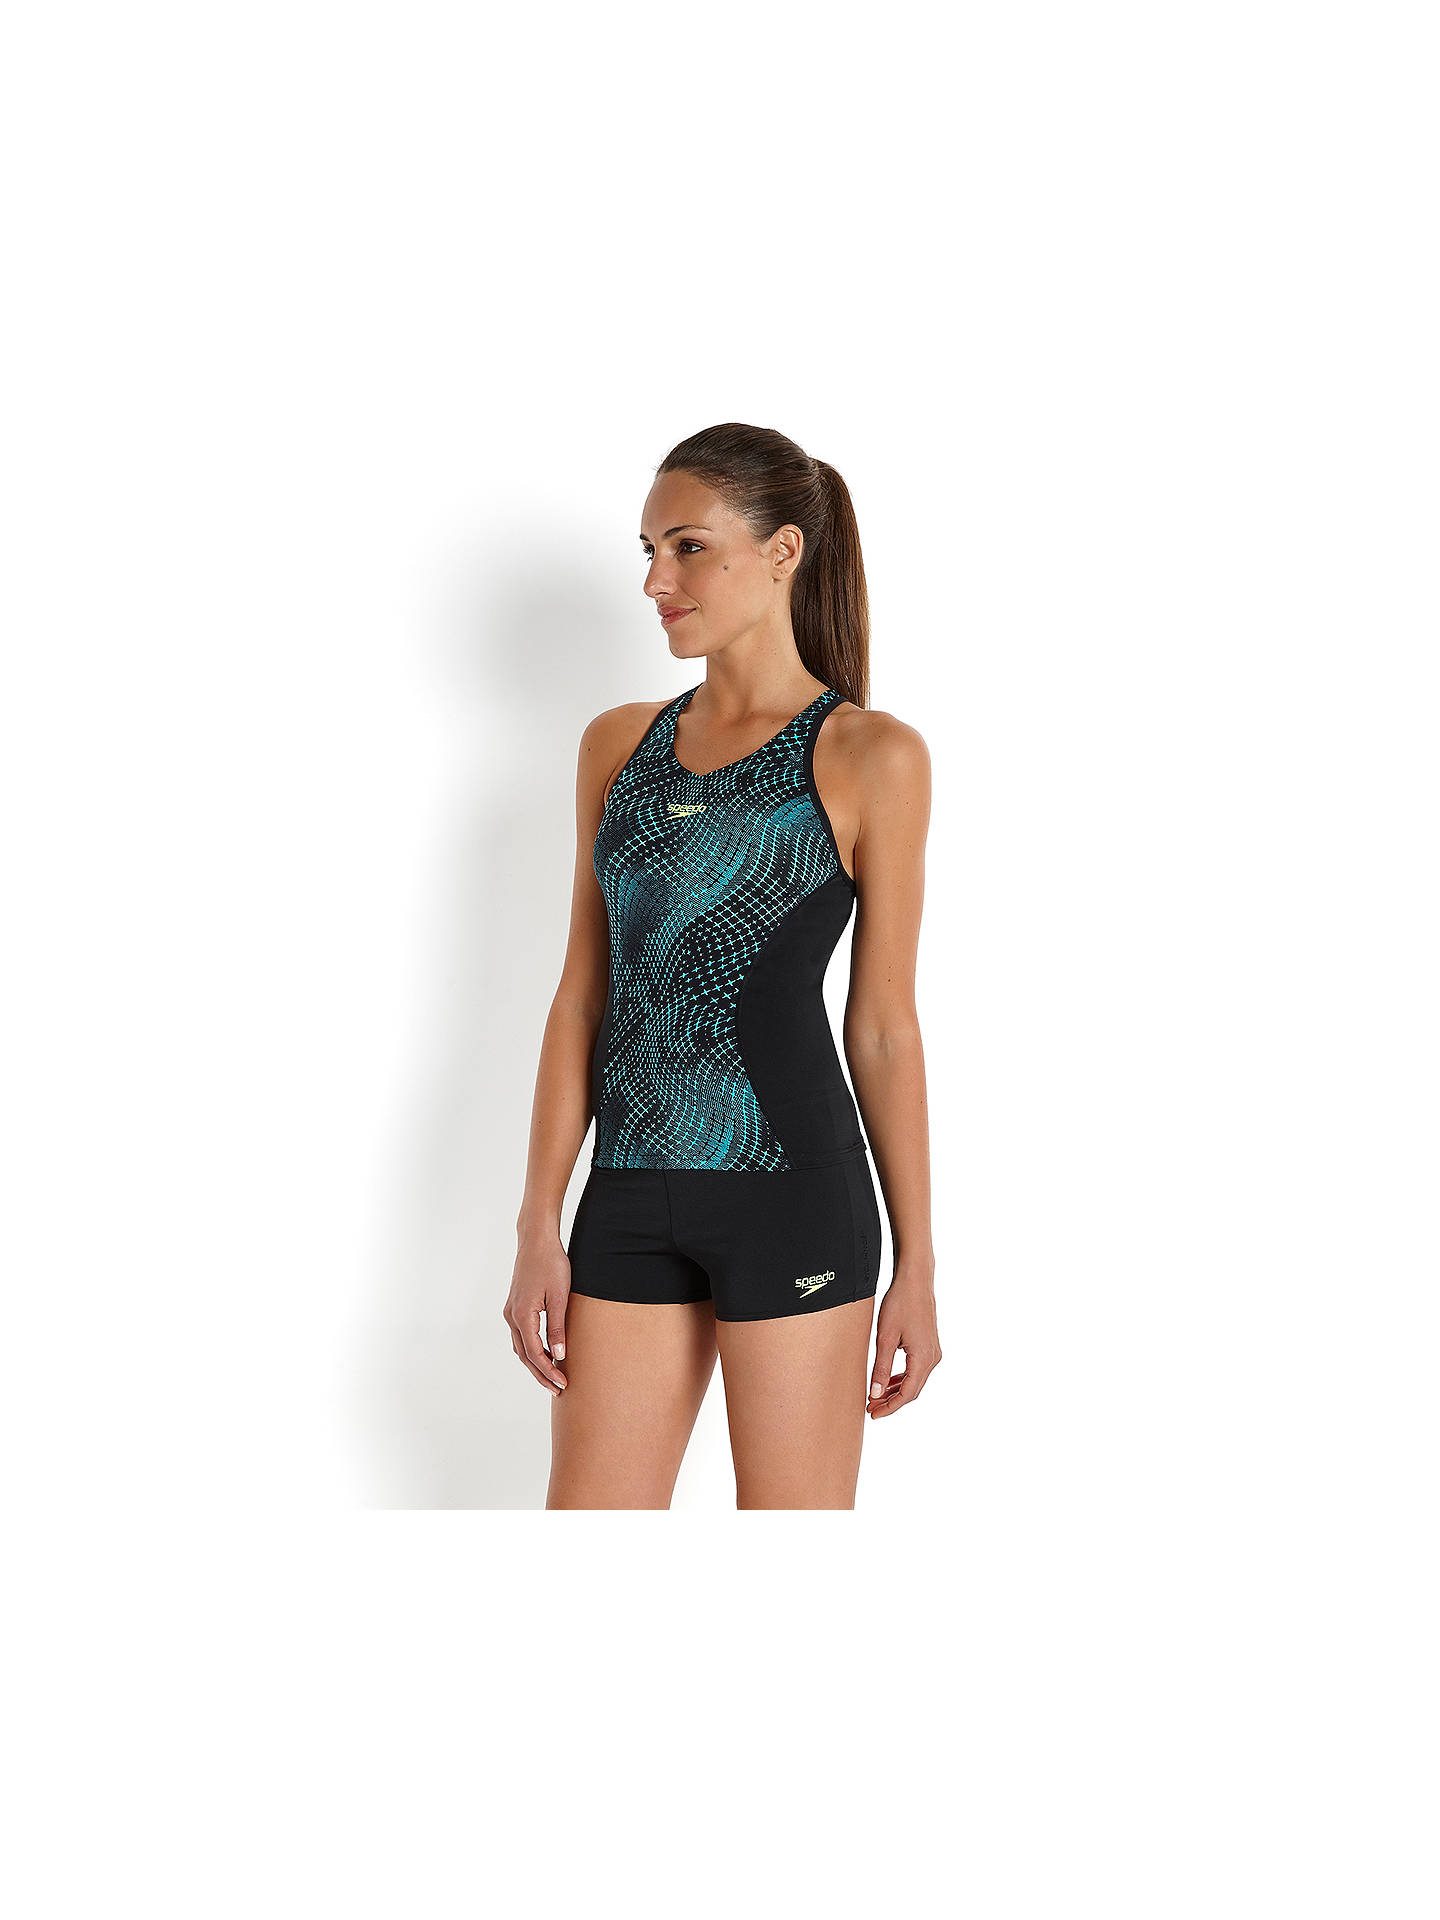 a09c482adb5f2 ... Buy Speedo Monogram All Over Print Boyleg Tankini Swimsuit, Black/Blue,  32 Online ...